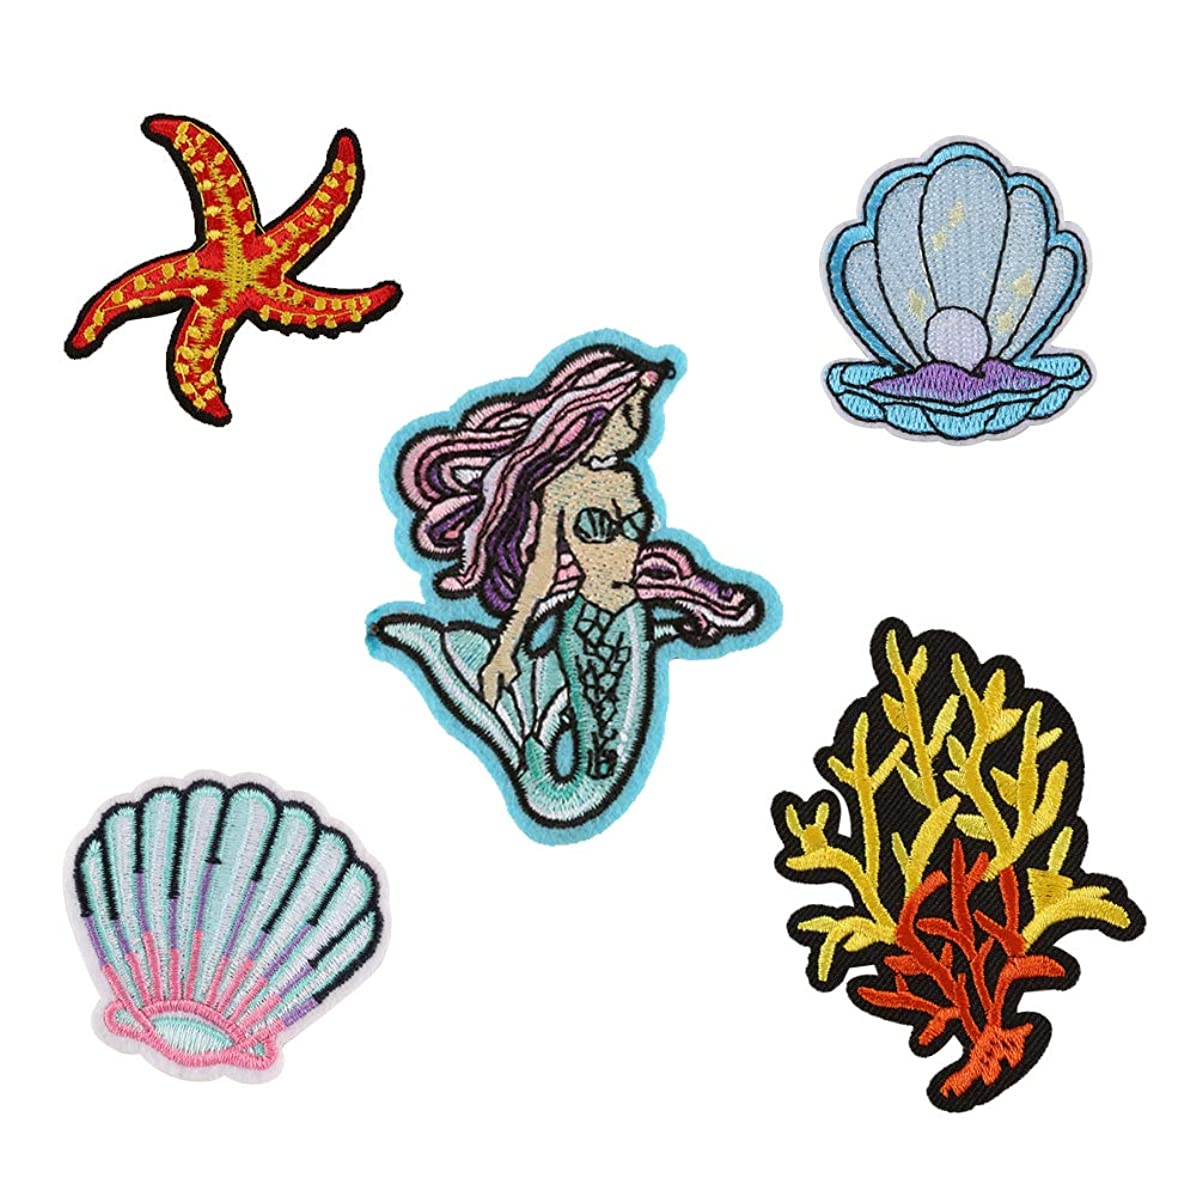 XUNHUI Clothing DIY Embroidery Iron On Patches Mermaid Shell Starfish Patch for Clothes Stickers Fabric 1 Set